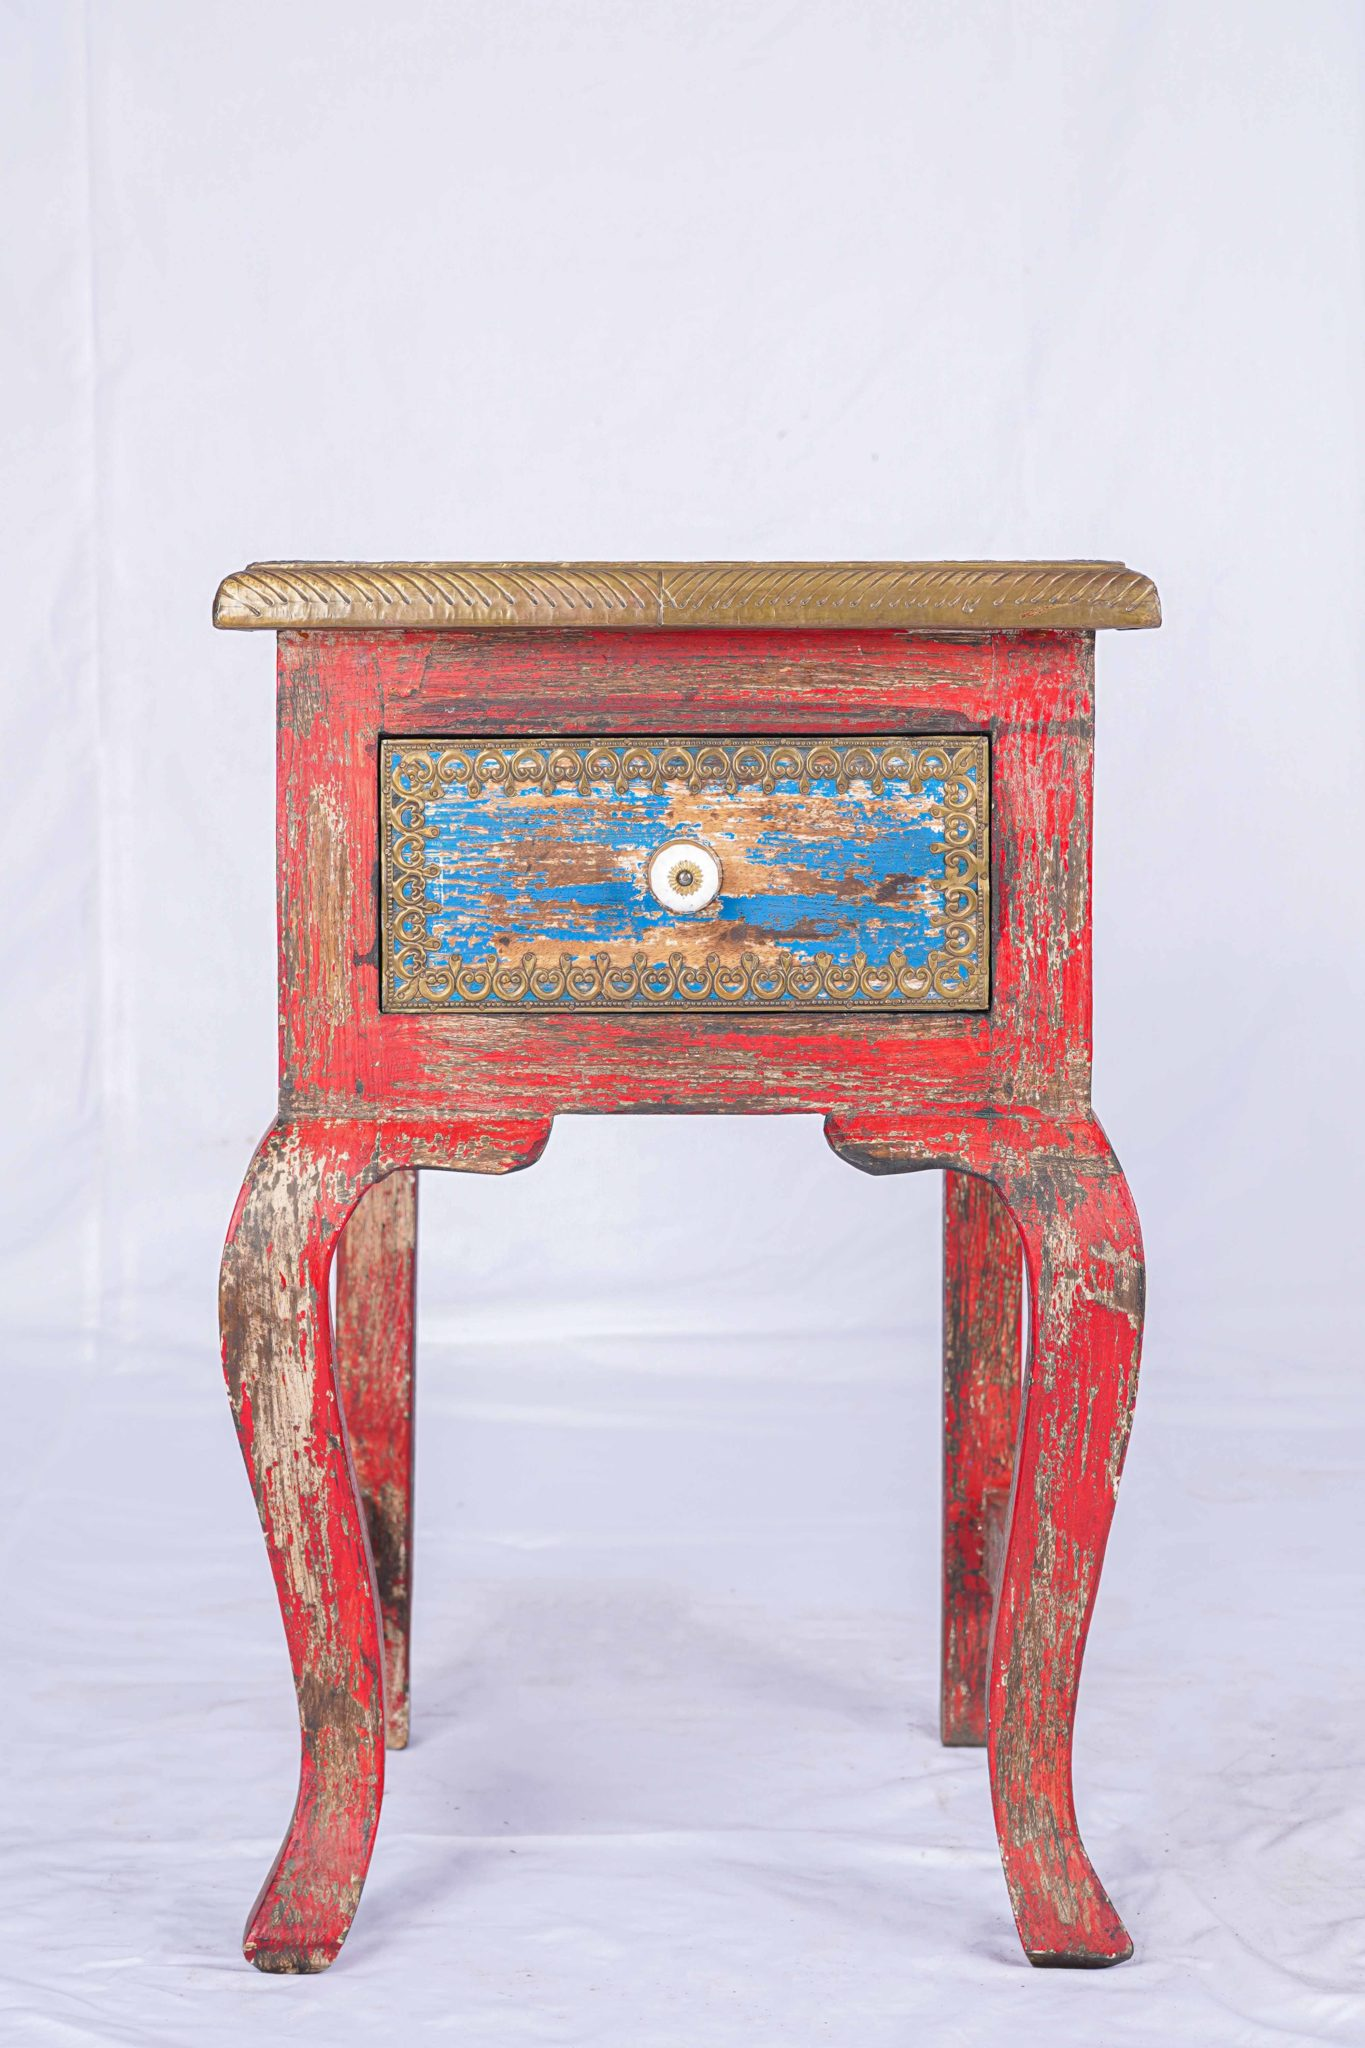 Clearance Sale: Antique red painted side table, Indian design - Siam Sawadee